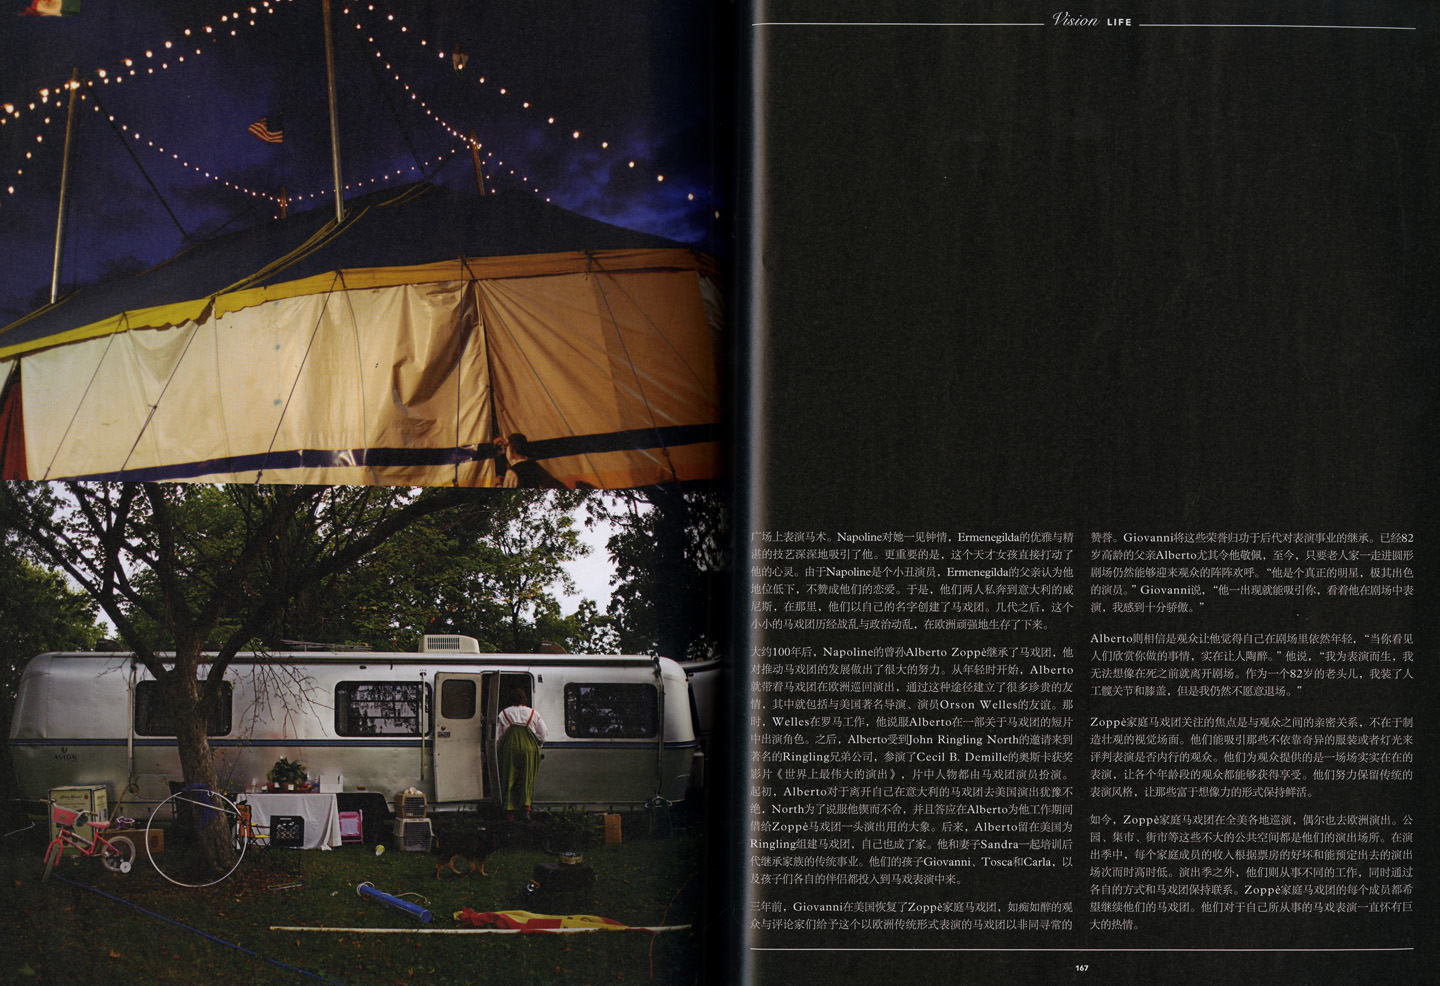 VisionMag-Zoppe-004